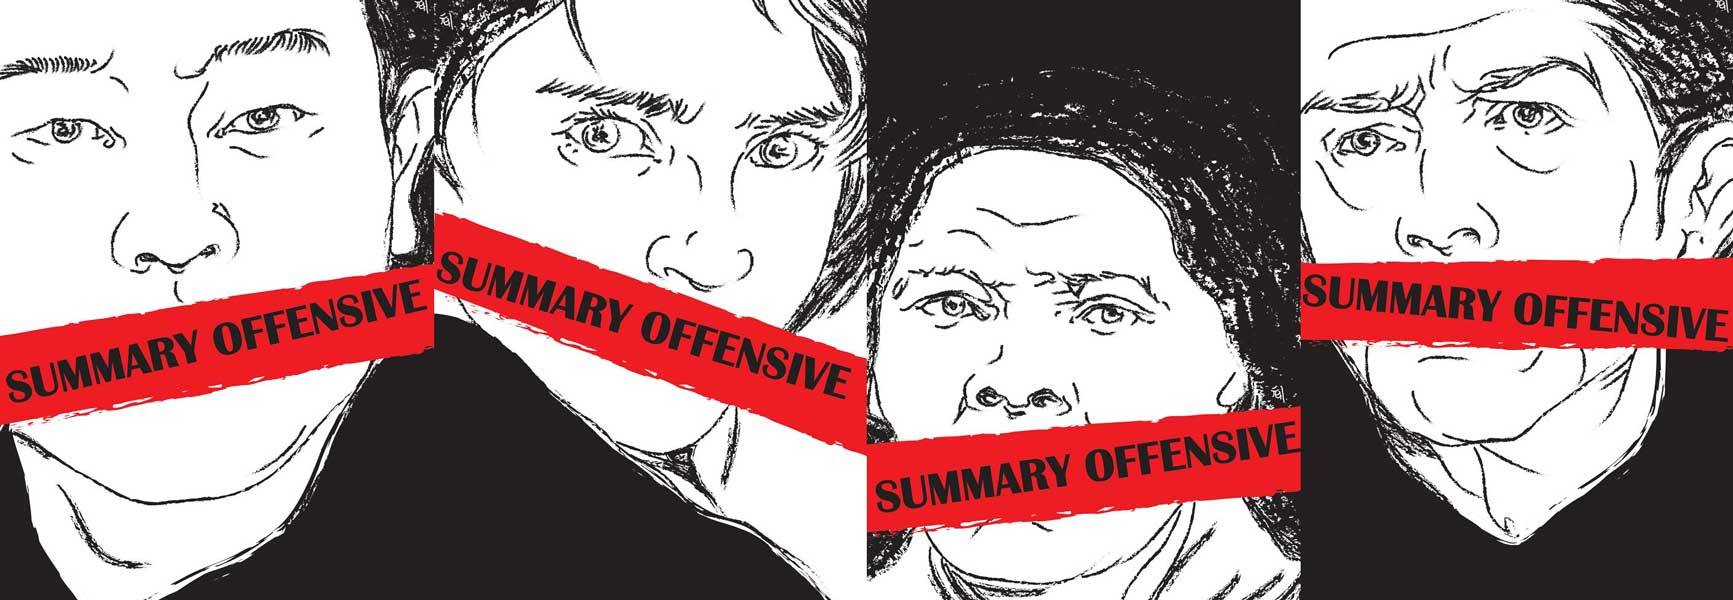 summary offensive